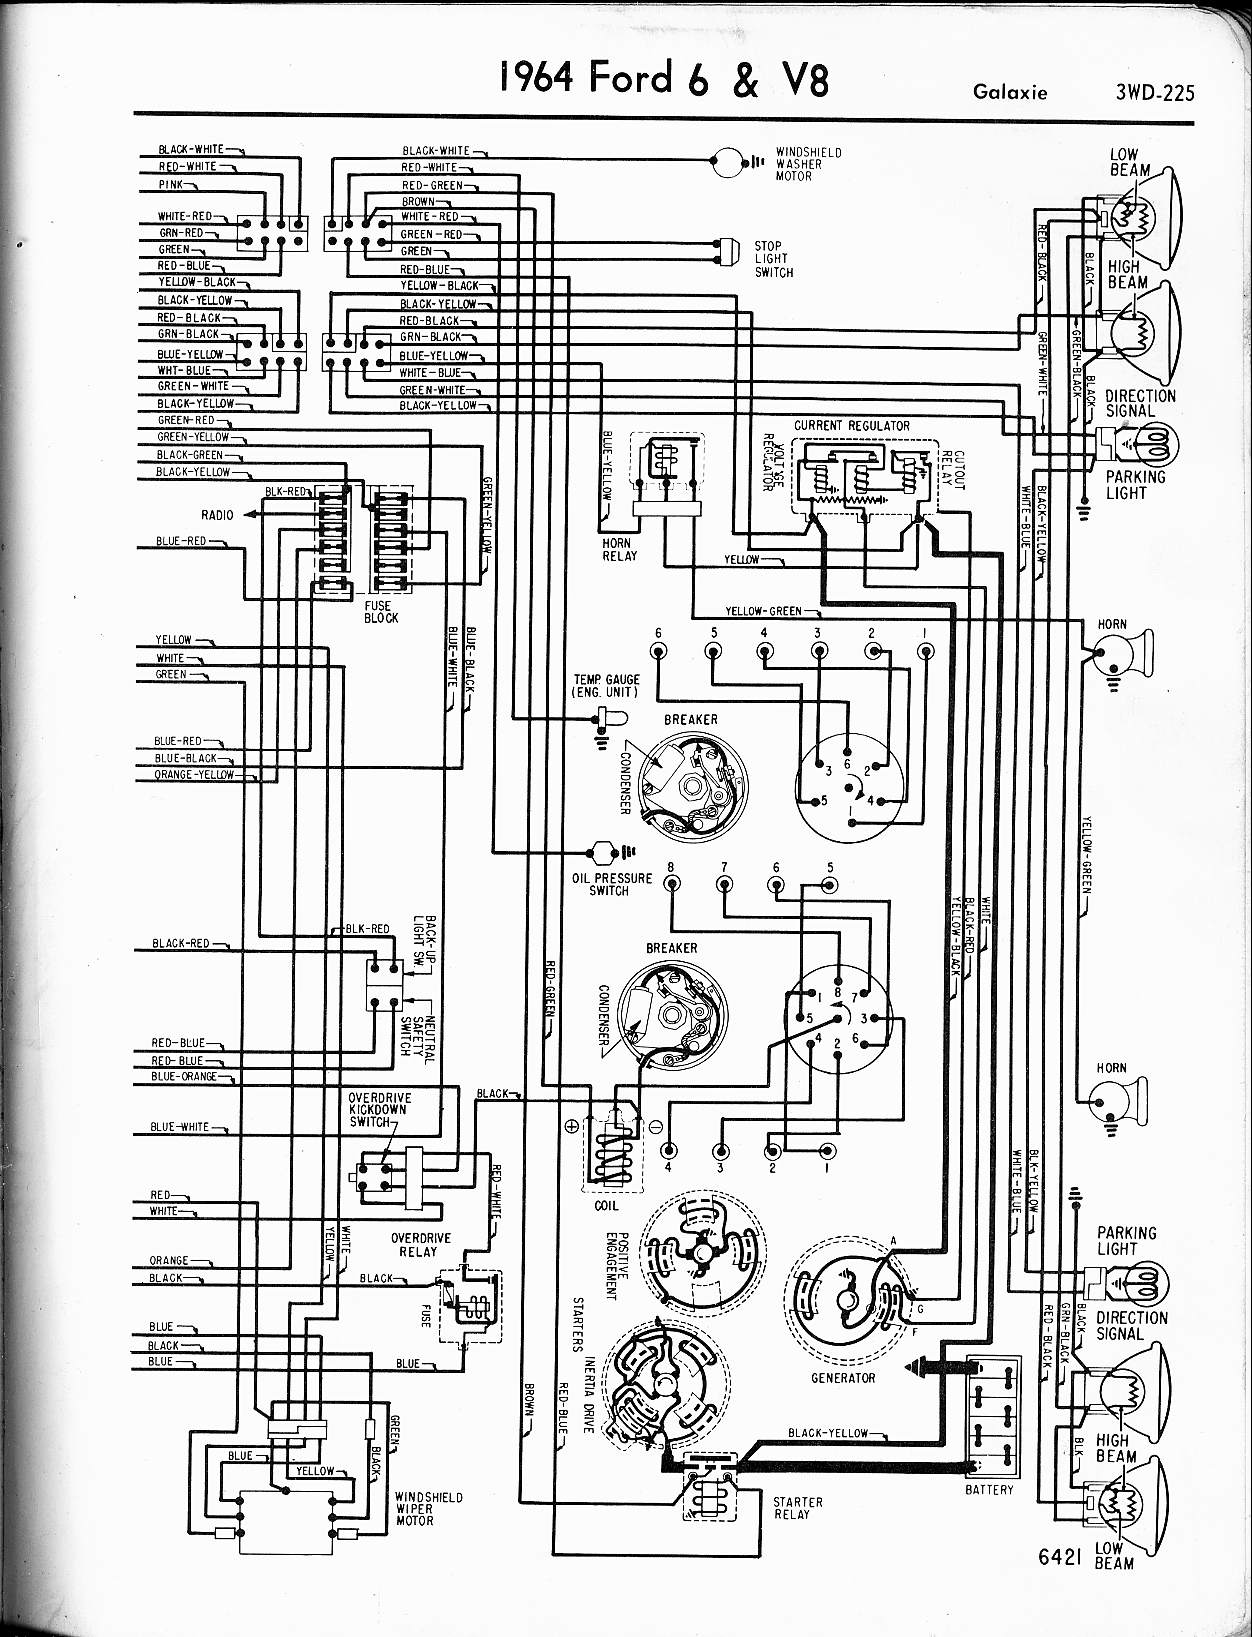 ba xr6 icc wiring diagram 2002 ford taurus falcon wes vipie de for 1964 diagrams instruct rh 9 nadine wolf photoart engine